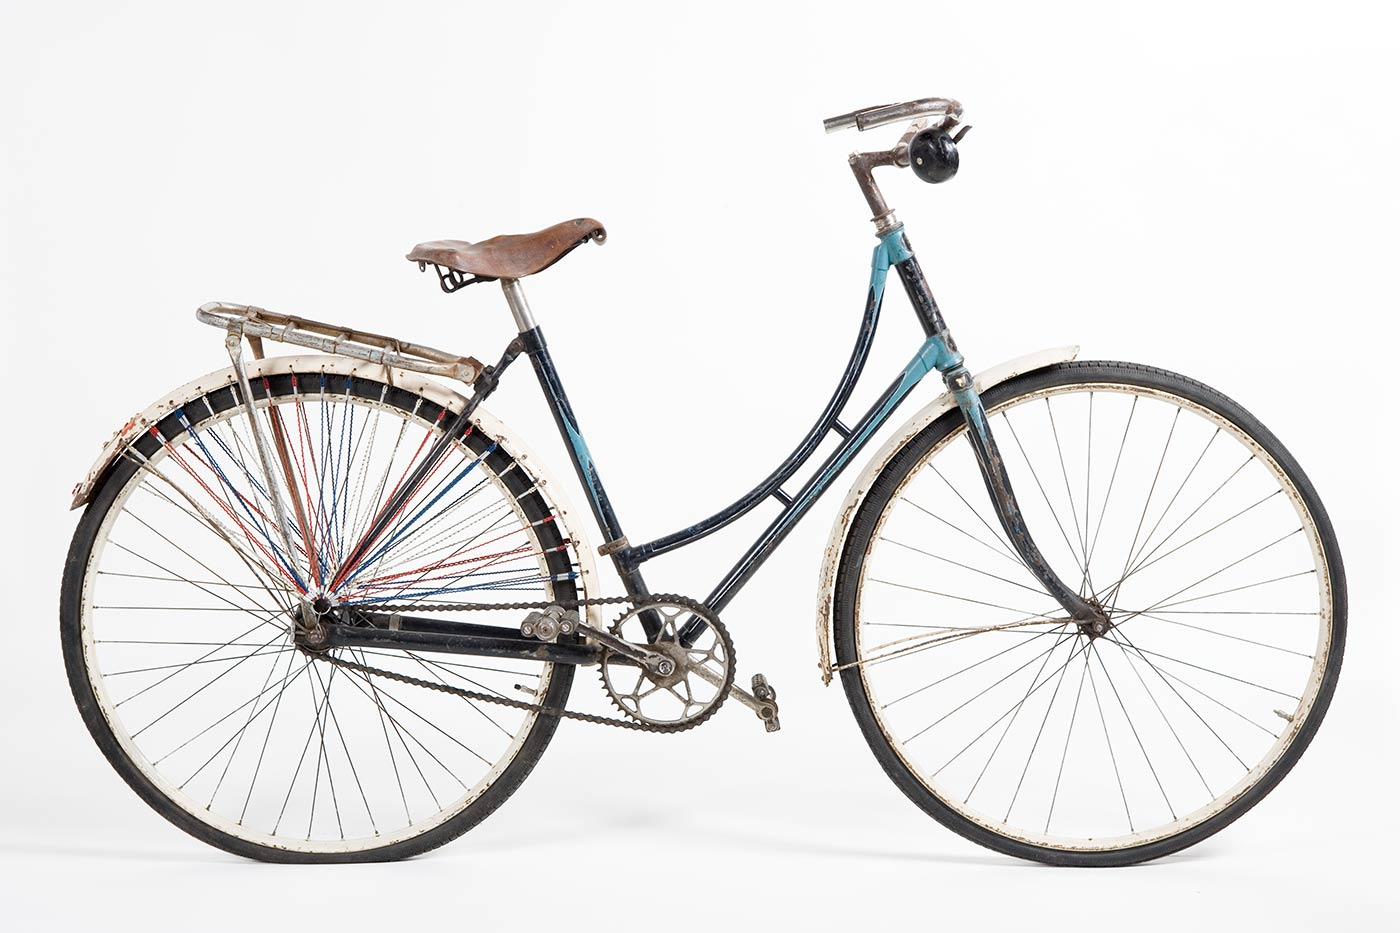 Ladies refurbished 'Roadmaster' bicycle. The frame is handpainted in turquoise and navy blue enamel paint, and the mudguards are white. It has a brown leather seat and a silver rack attached to the rear end. Both of the wheels are from a Malvern Star. The rear wheel has lengths of red, white and blue fine cord attached through the mudguard and gathering just above the centre of the wheel; on both sides of the rear wheel. Small reflector on rear wheel guard. Large black bell on right side of the handlebar. - click to view larger image